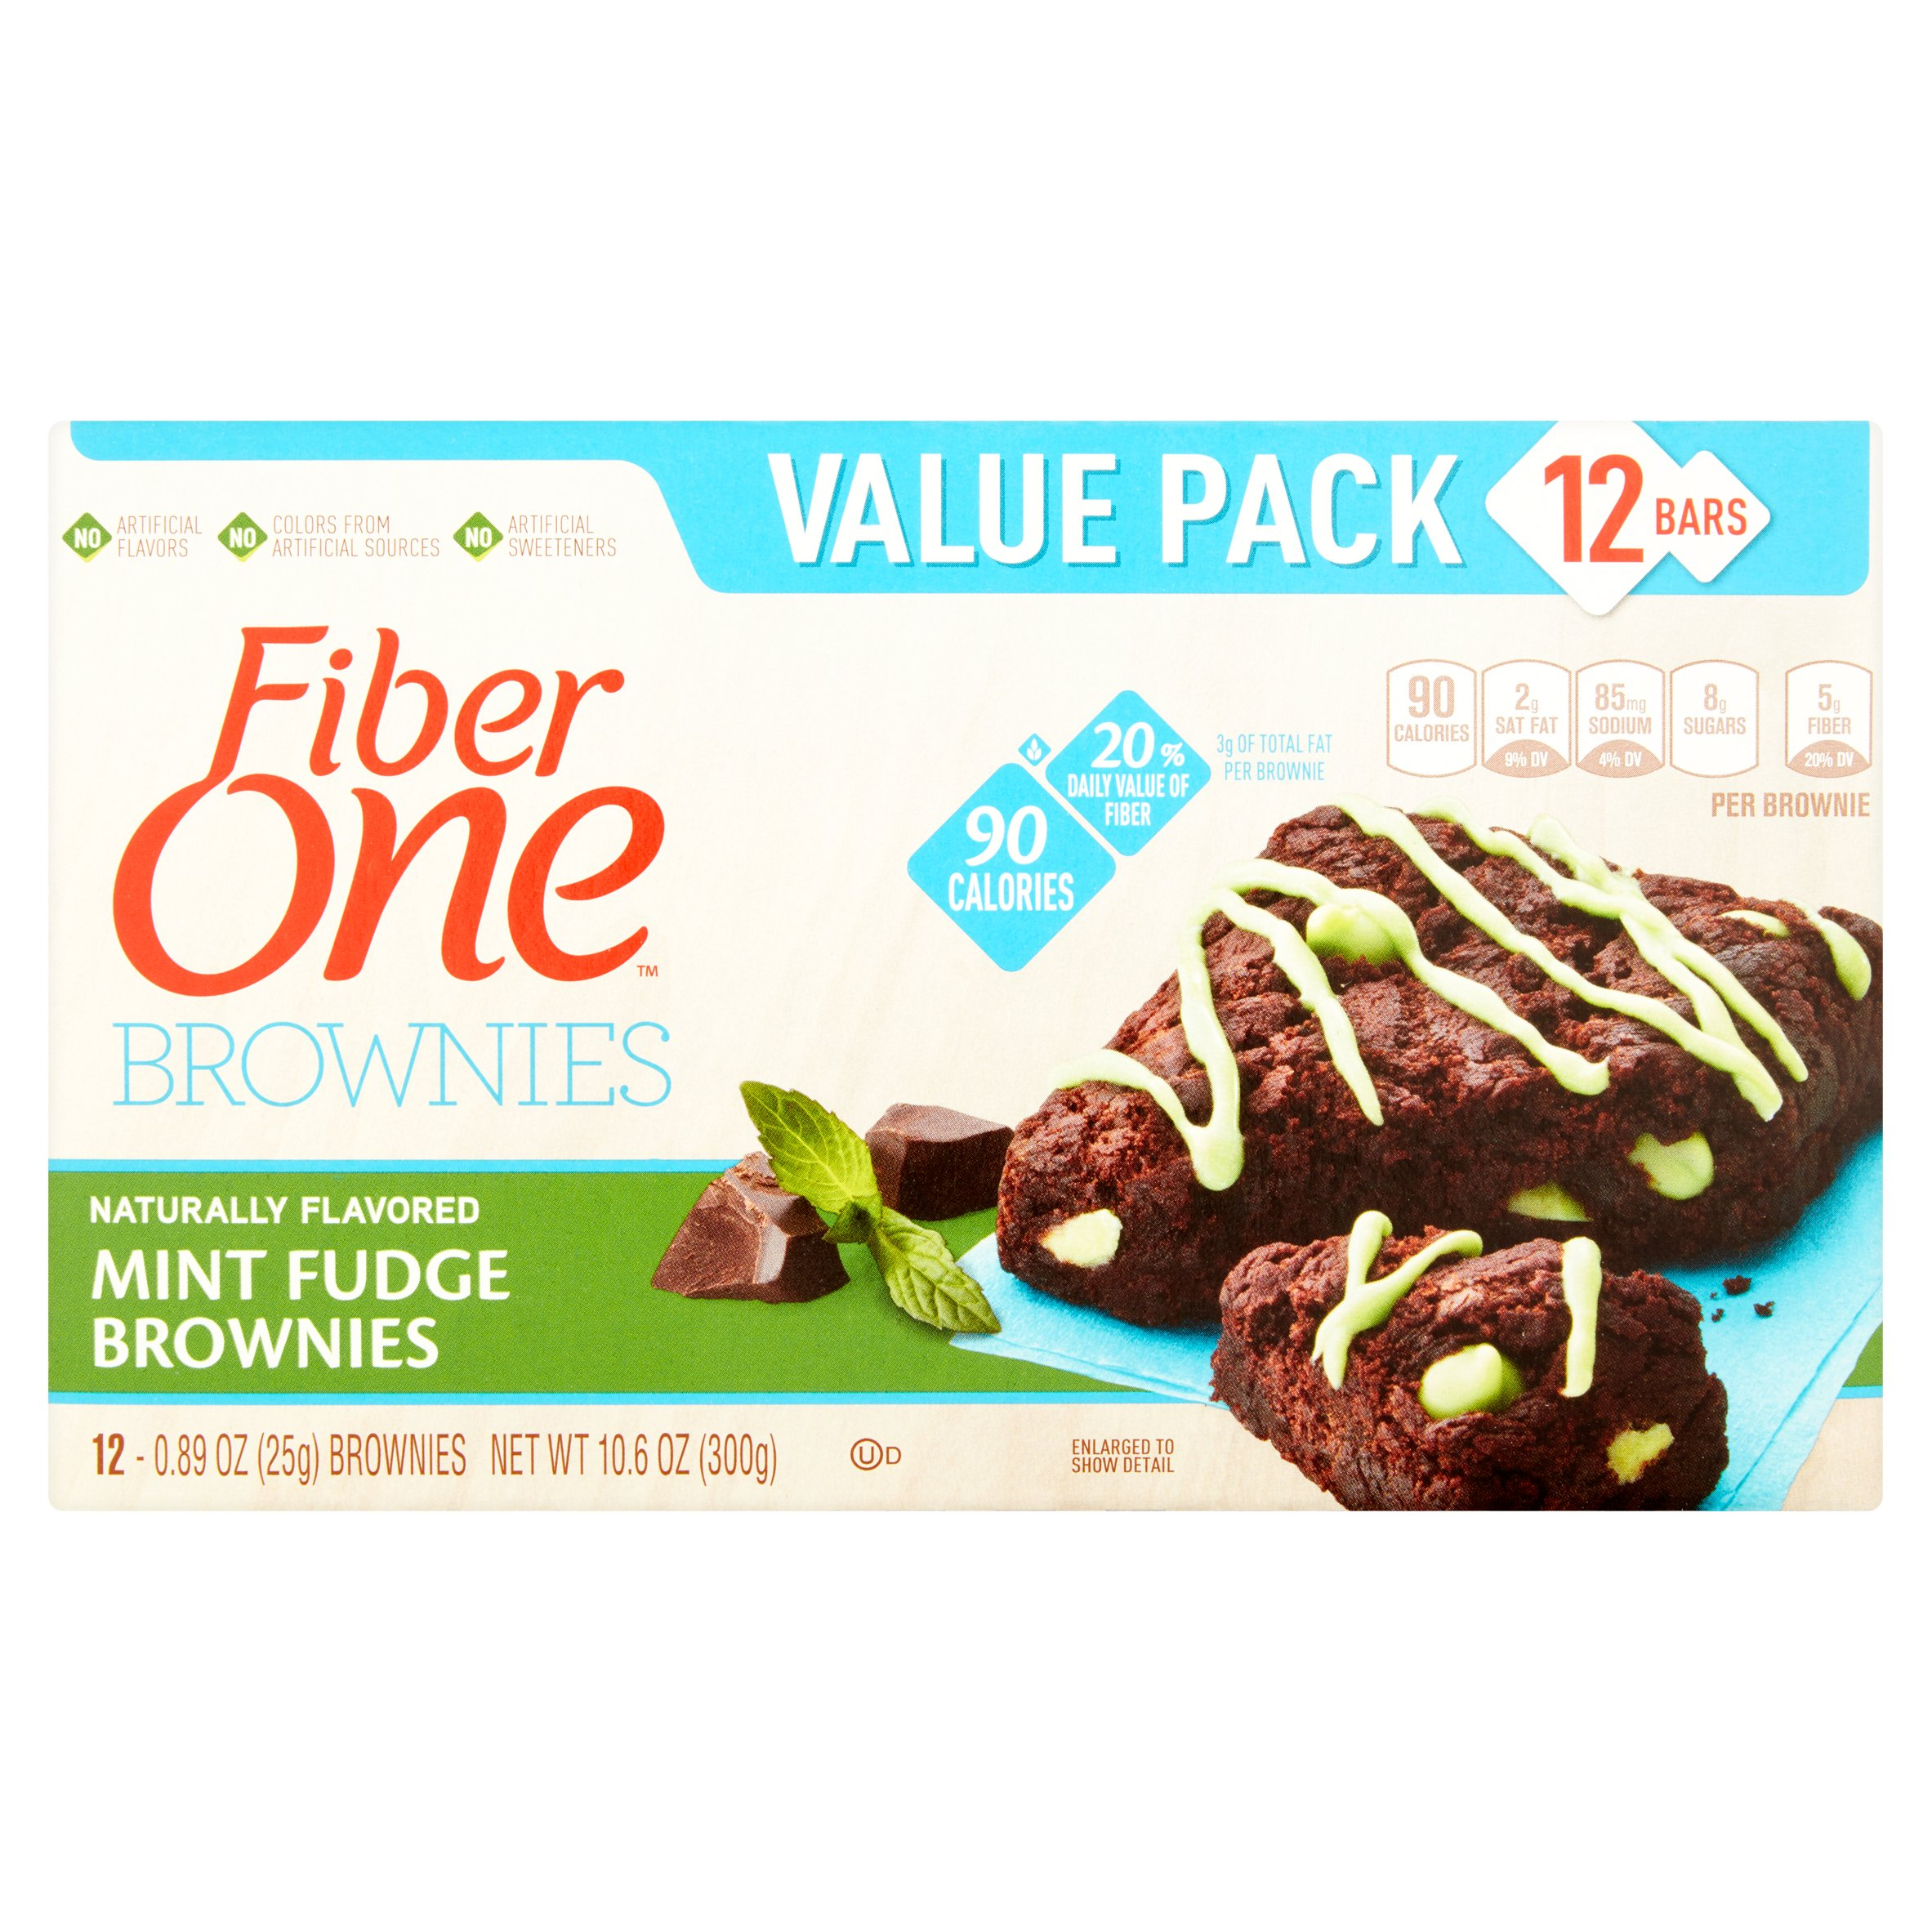 Fiber One 90 Calorie Mint Fudge Brownies 12 ct Box by General Mills